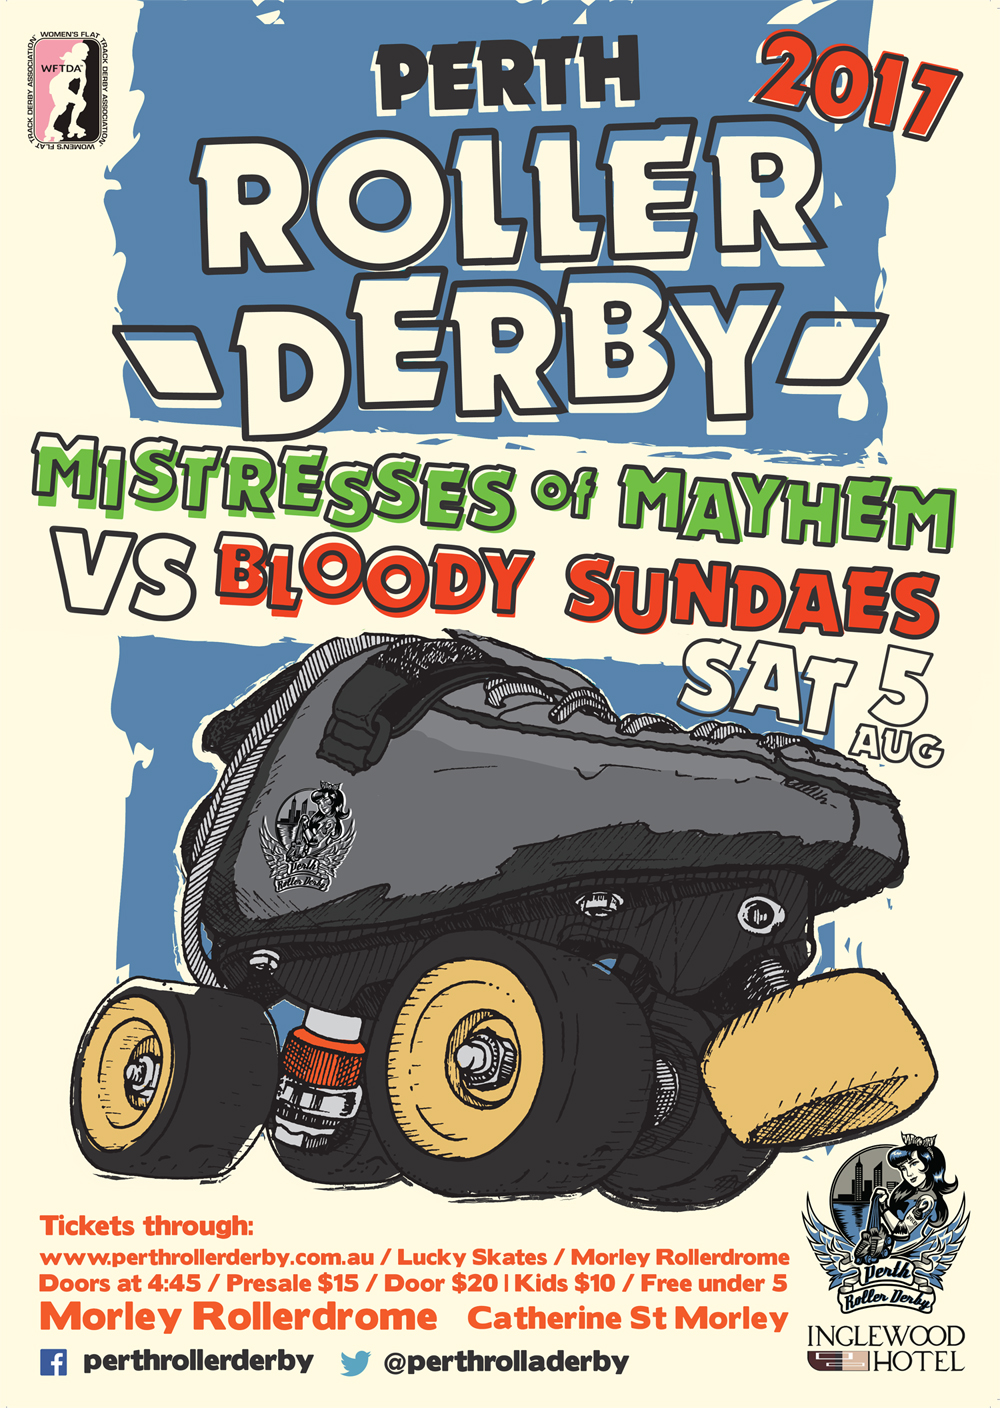 Perth Roller Derby 2017 : Game #4